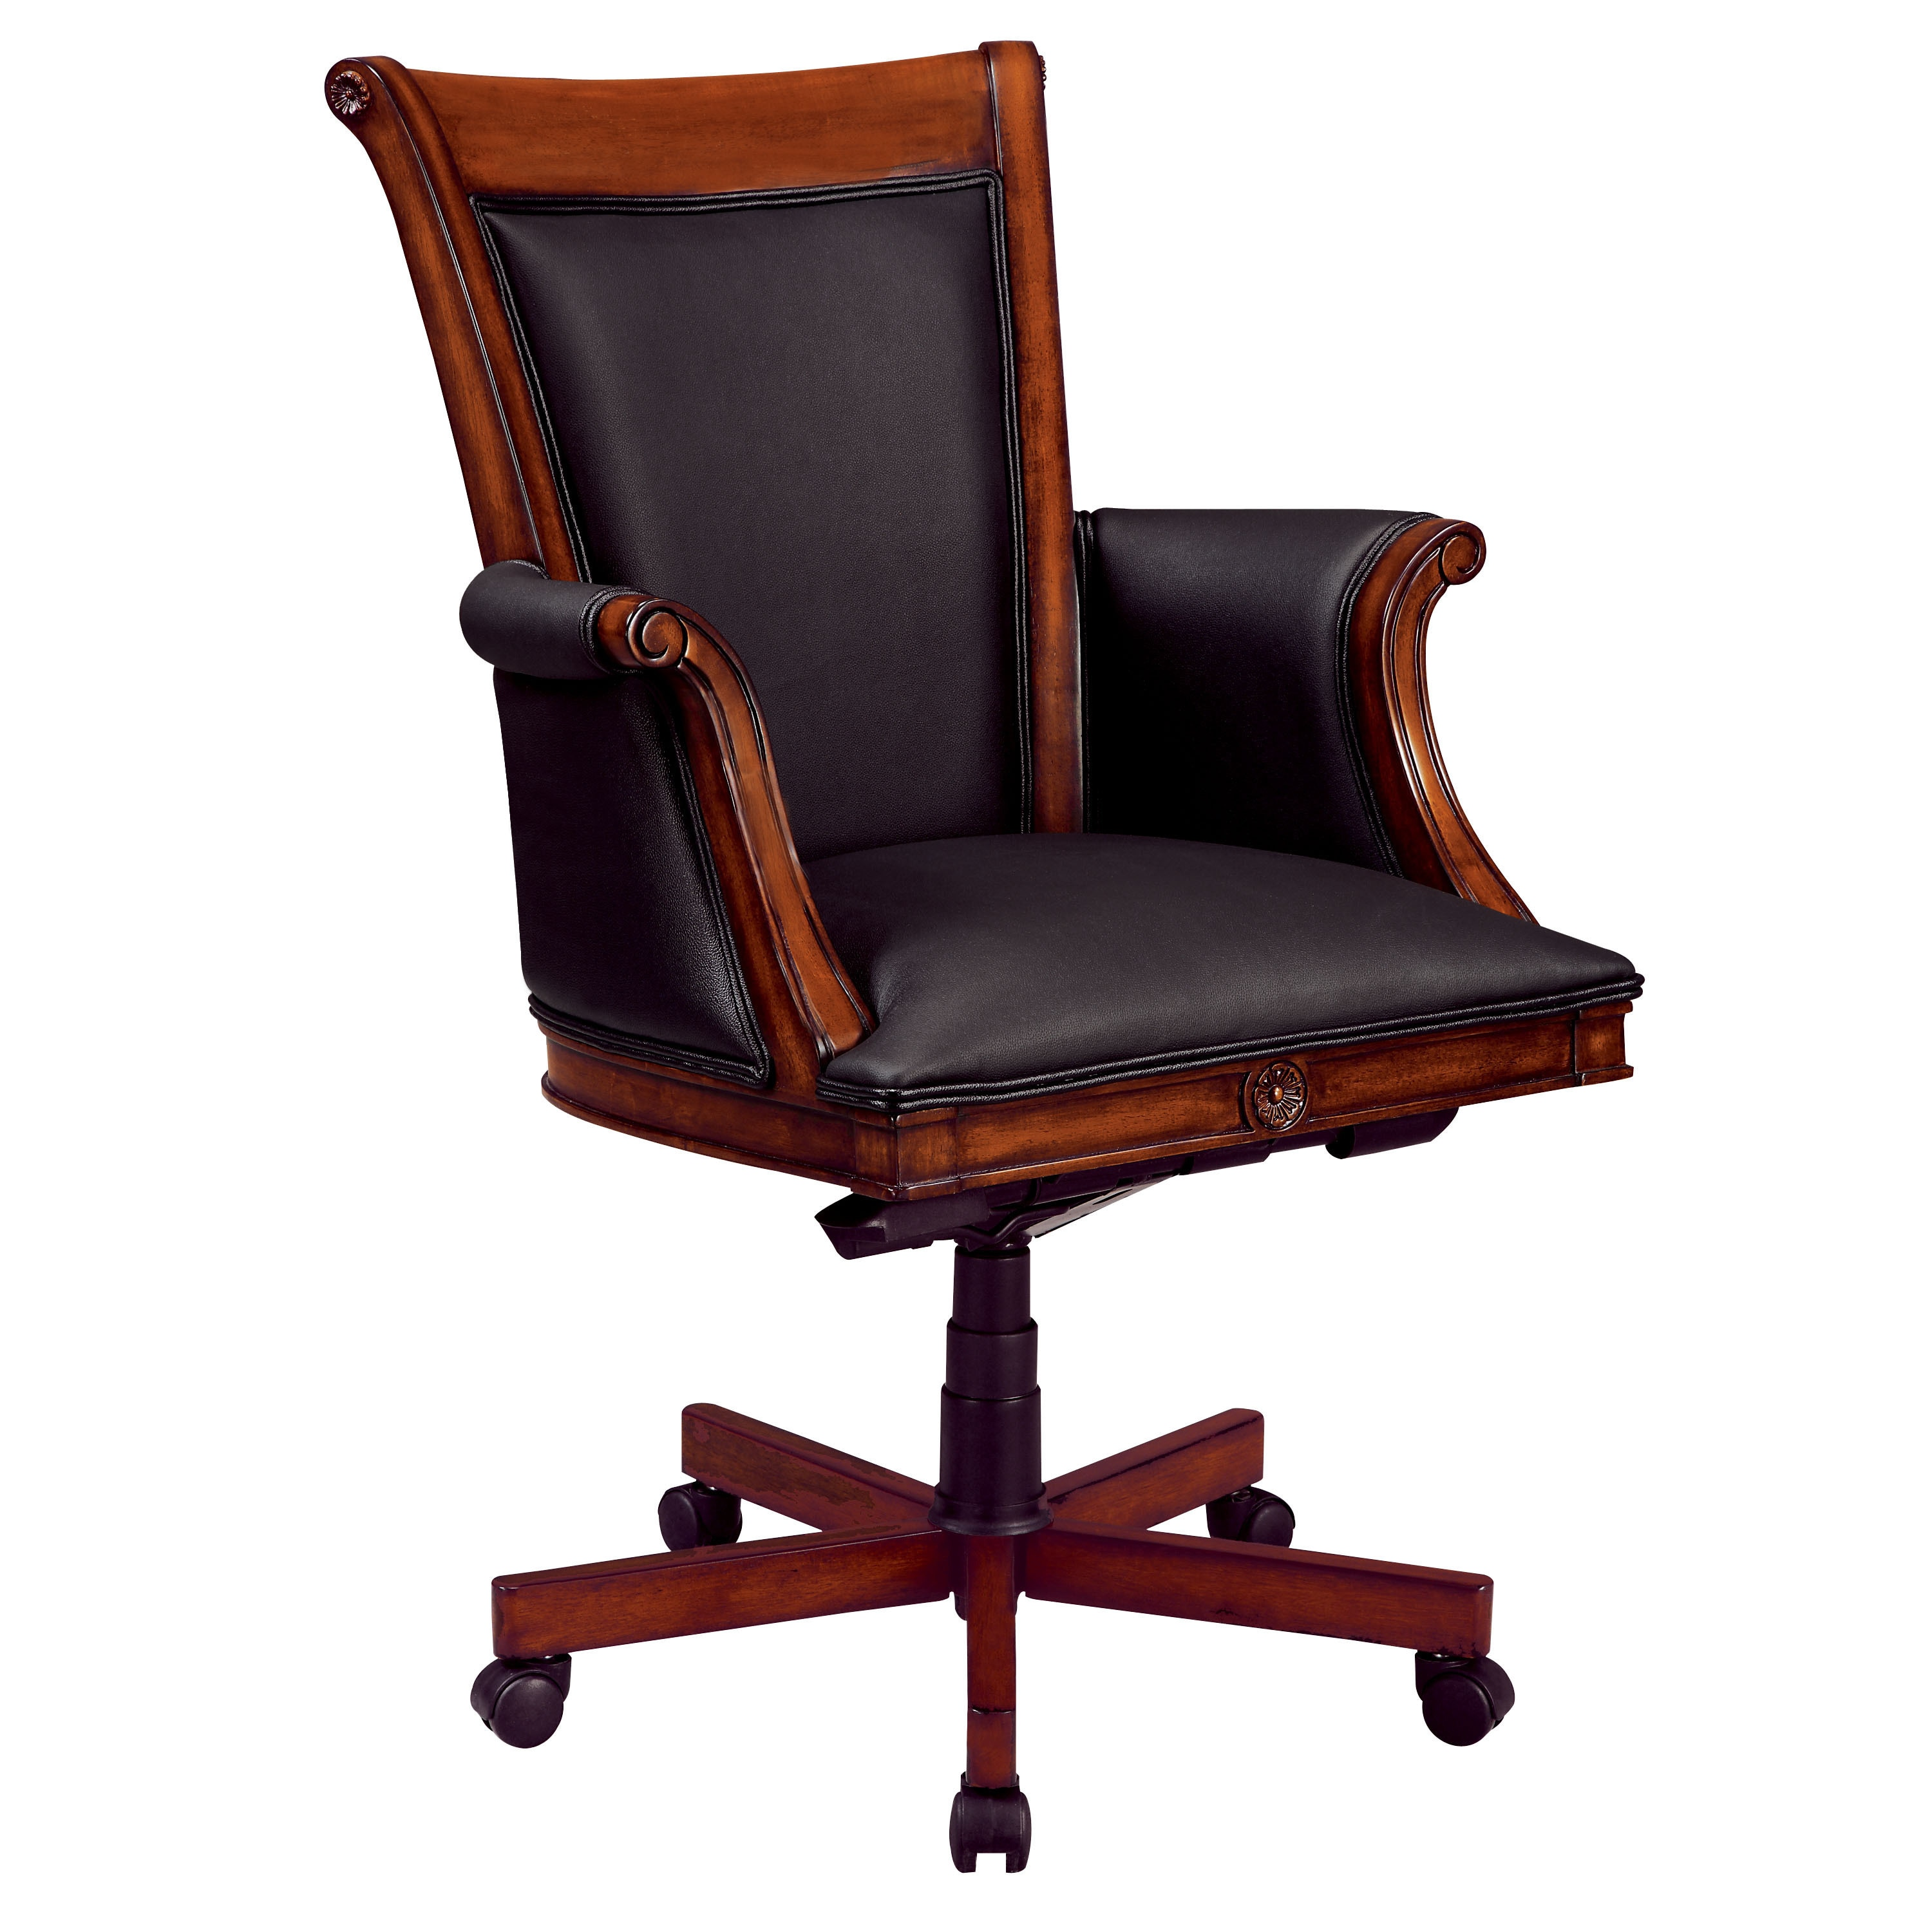 Dmi Office Furniture Executive High Back Chair with Wood/Upholstered Arms